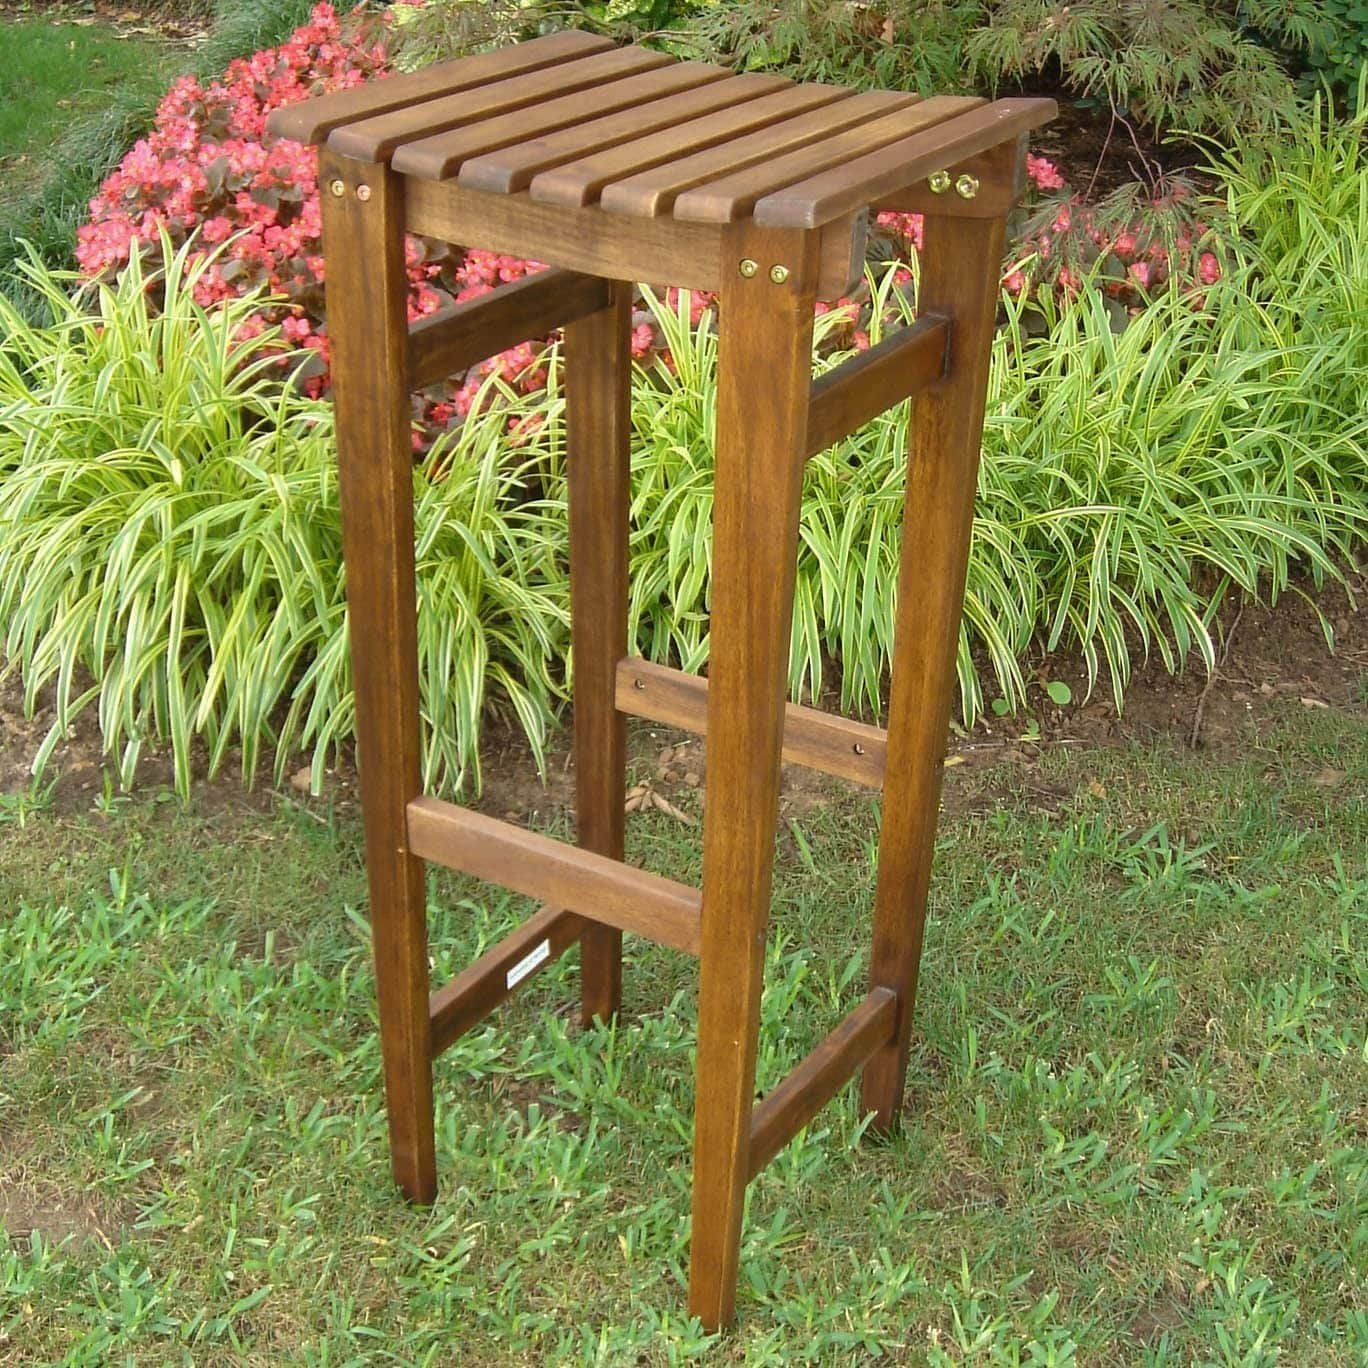 14th Mobility Brown Wooden Backless Bar Stool Set of 2, Acacia Wood Construction, All-Weather and Water Resistant Protective + Expert Guide